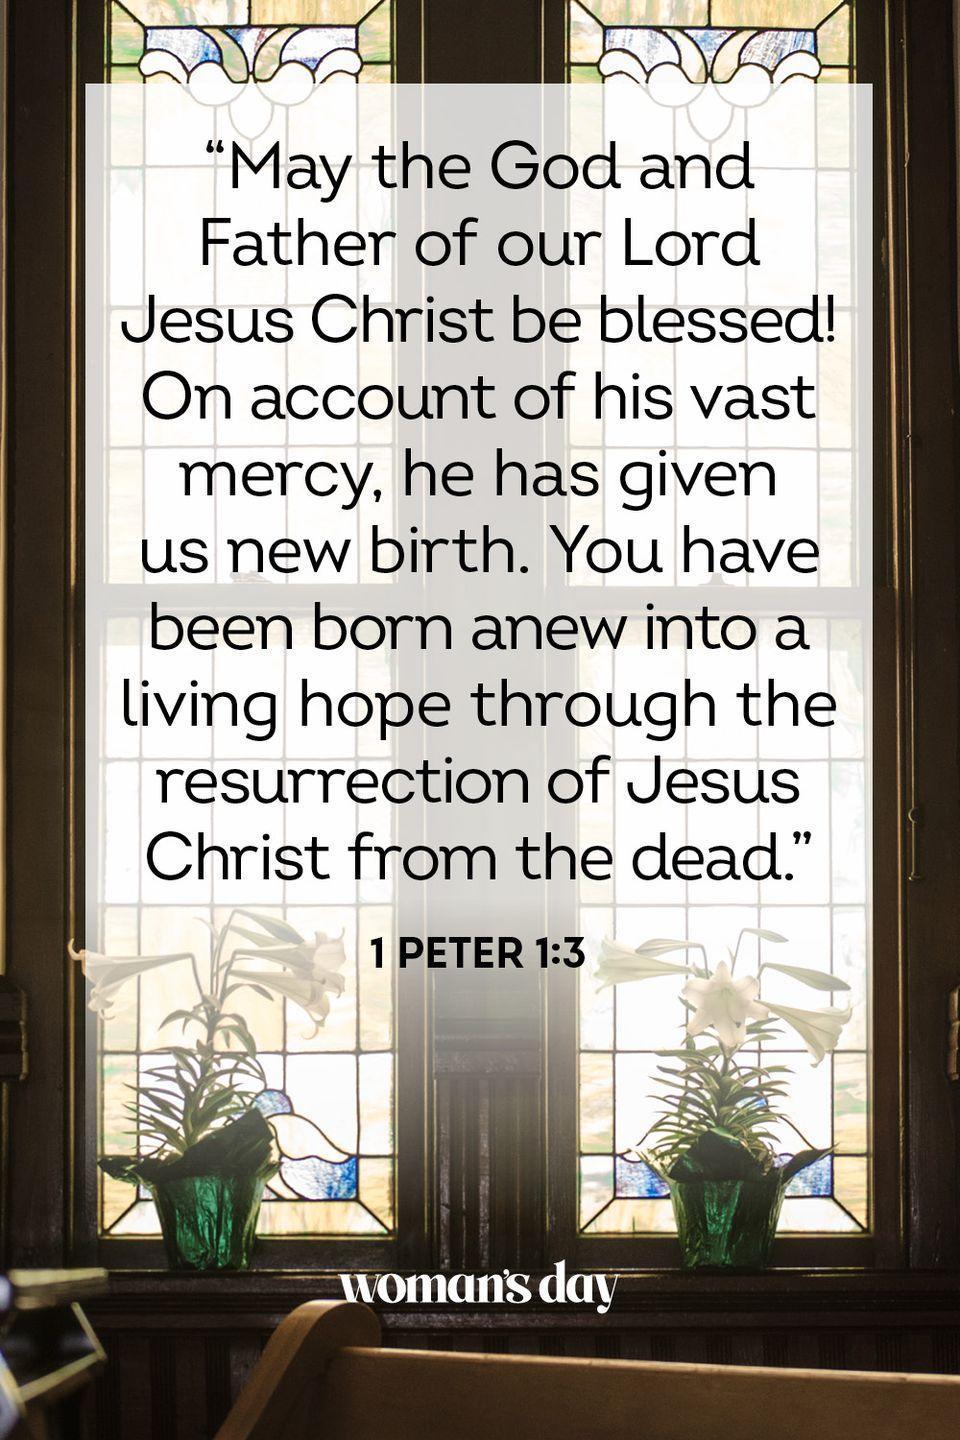 "<p>""May the God and Father of our Lord Jesus Christ be blessed! On account of his vast mercy, he has given us new birth. You have been born anew into a living hope through the resurrection of Jesus Christ from the dead."" — 1 Peter 1:3</p>"